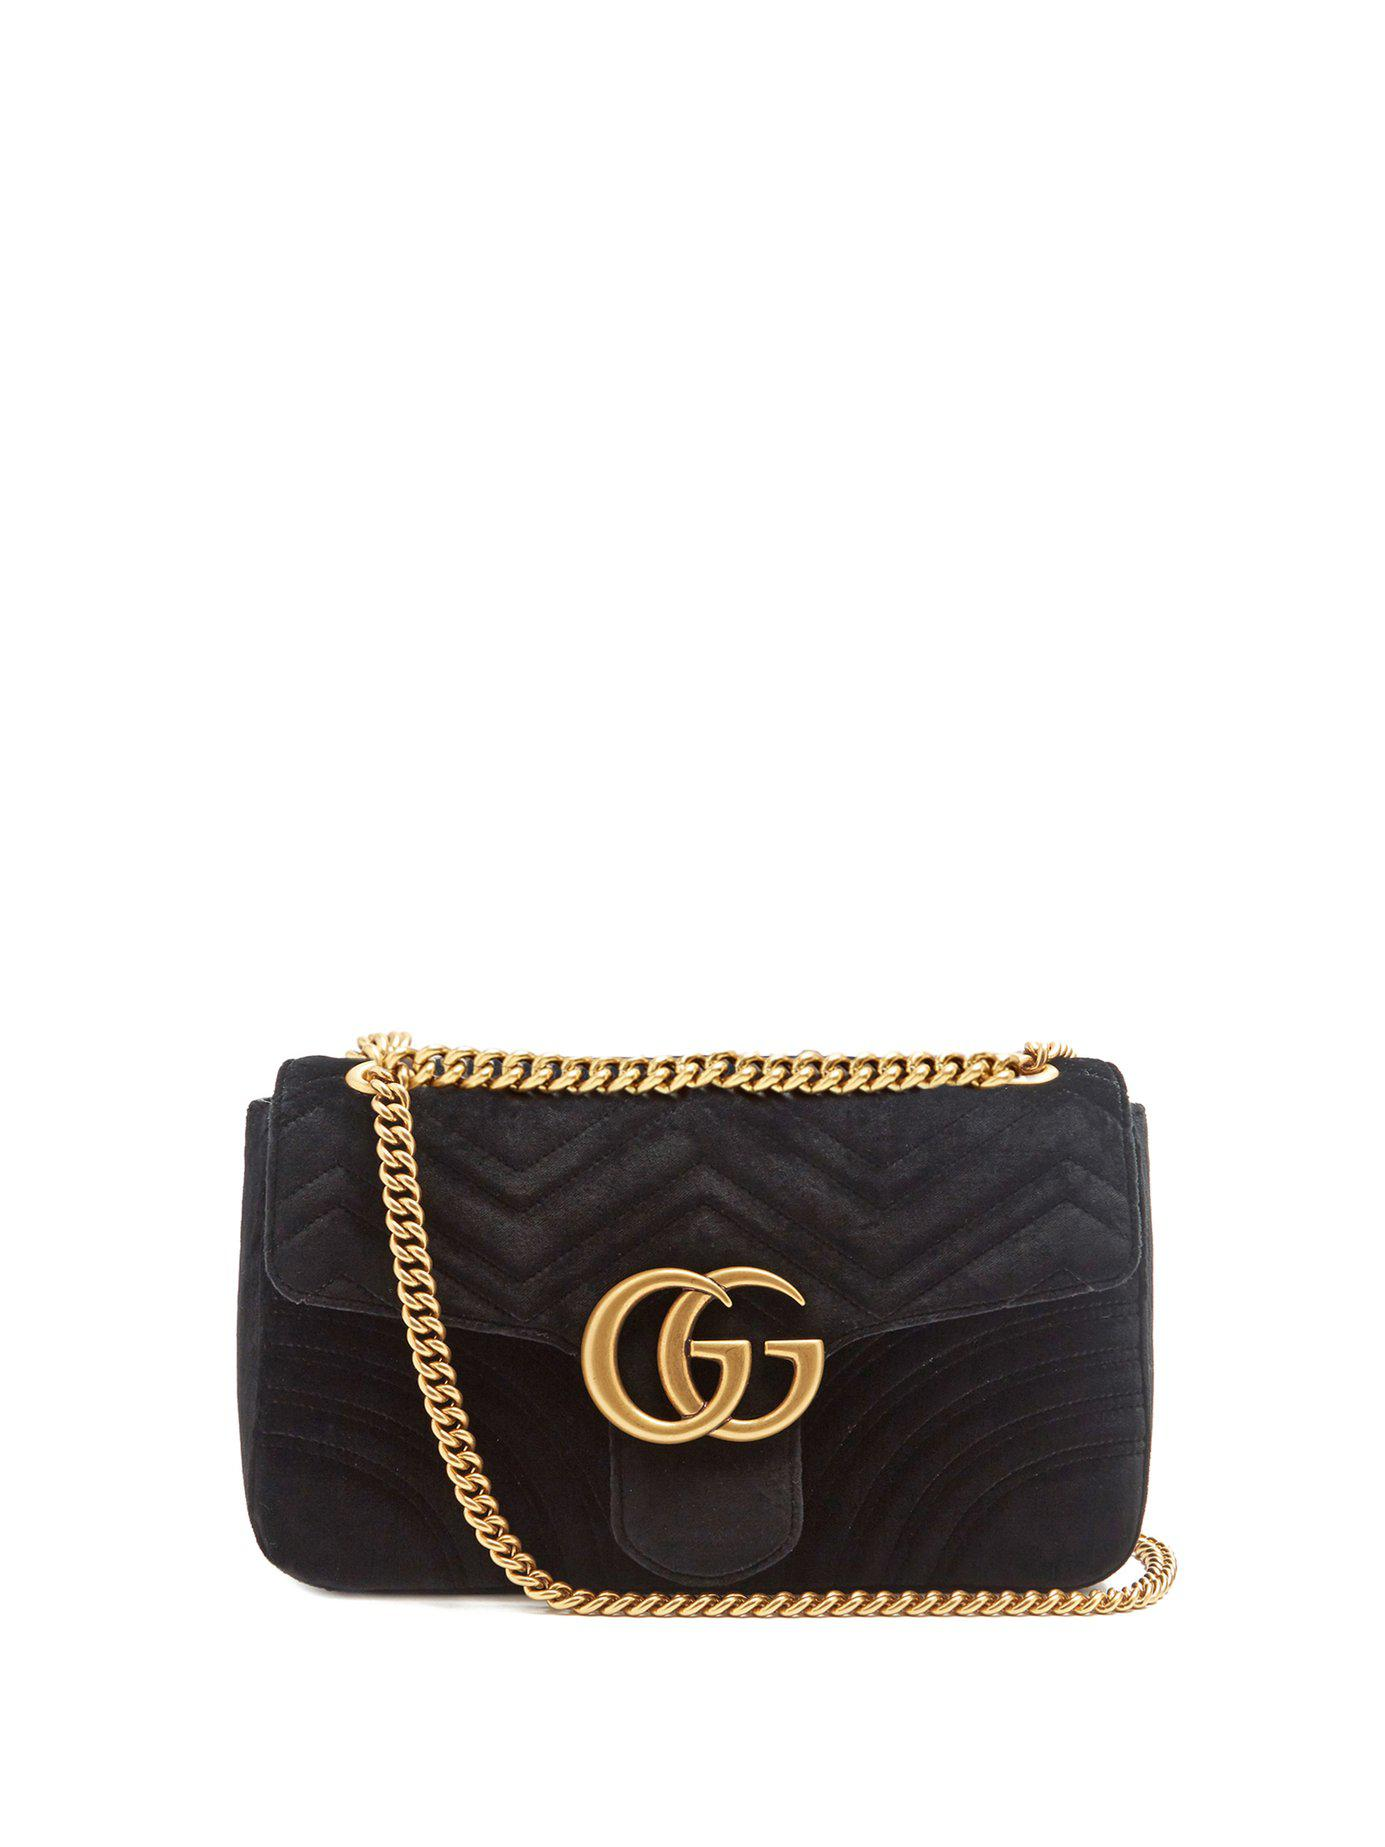 f830b58e6f6c5 Lyst - Gucci Gg Marmont Mini Velvet Quilted Shoulder Bag in Black